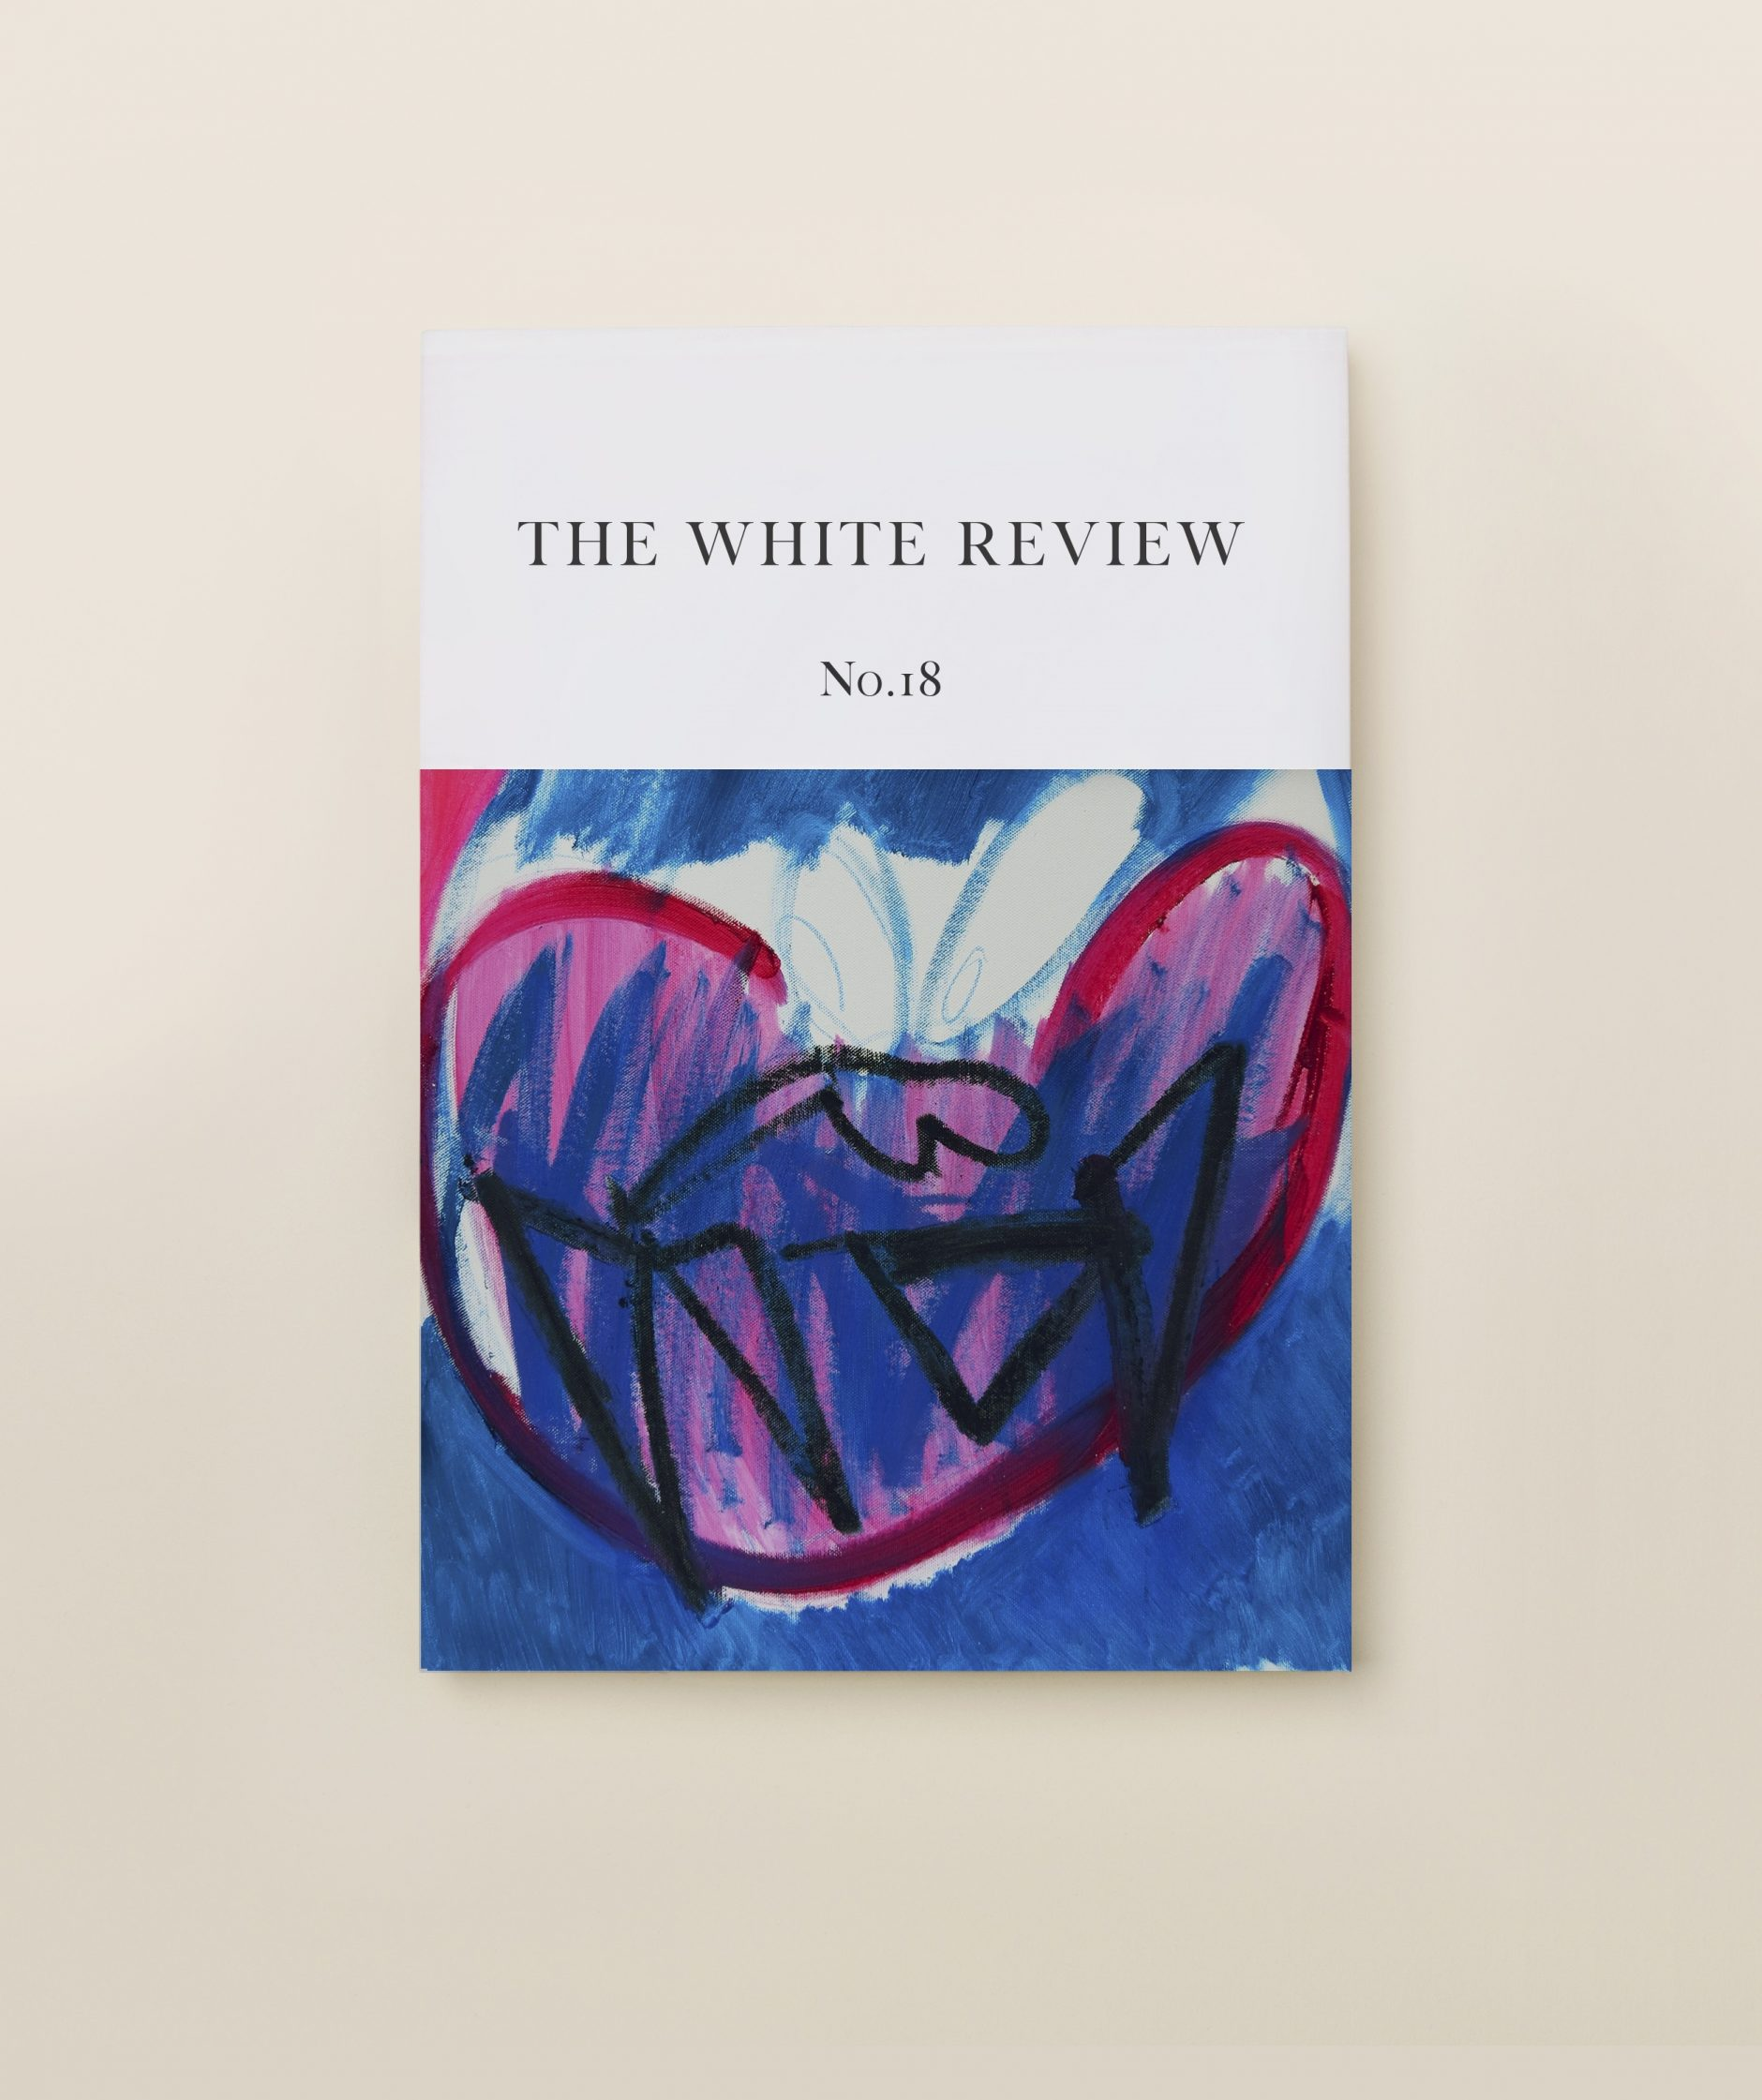 Best Original Fiction: The White Review, London (Gewinner)